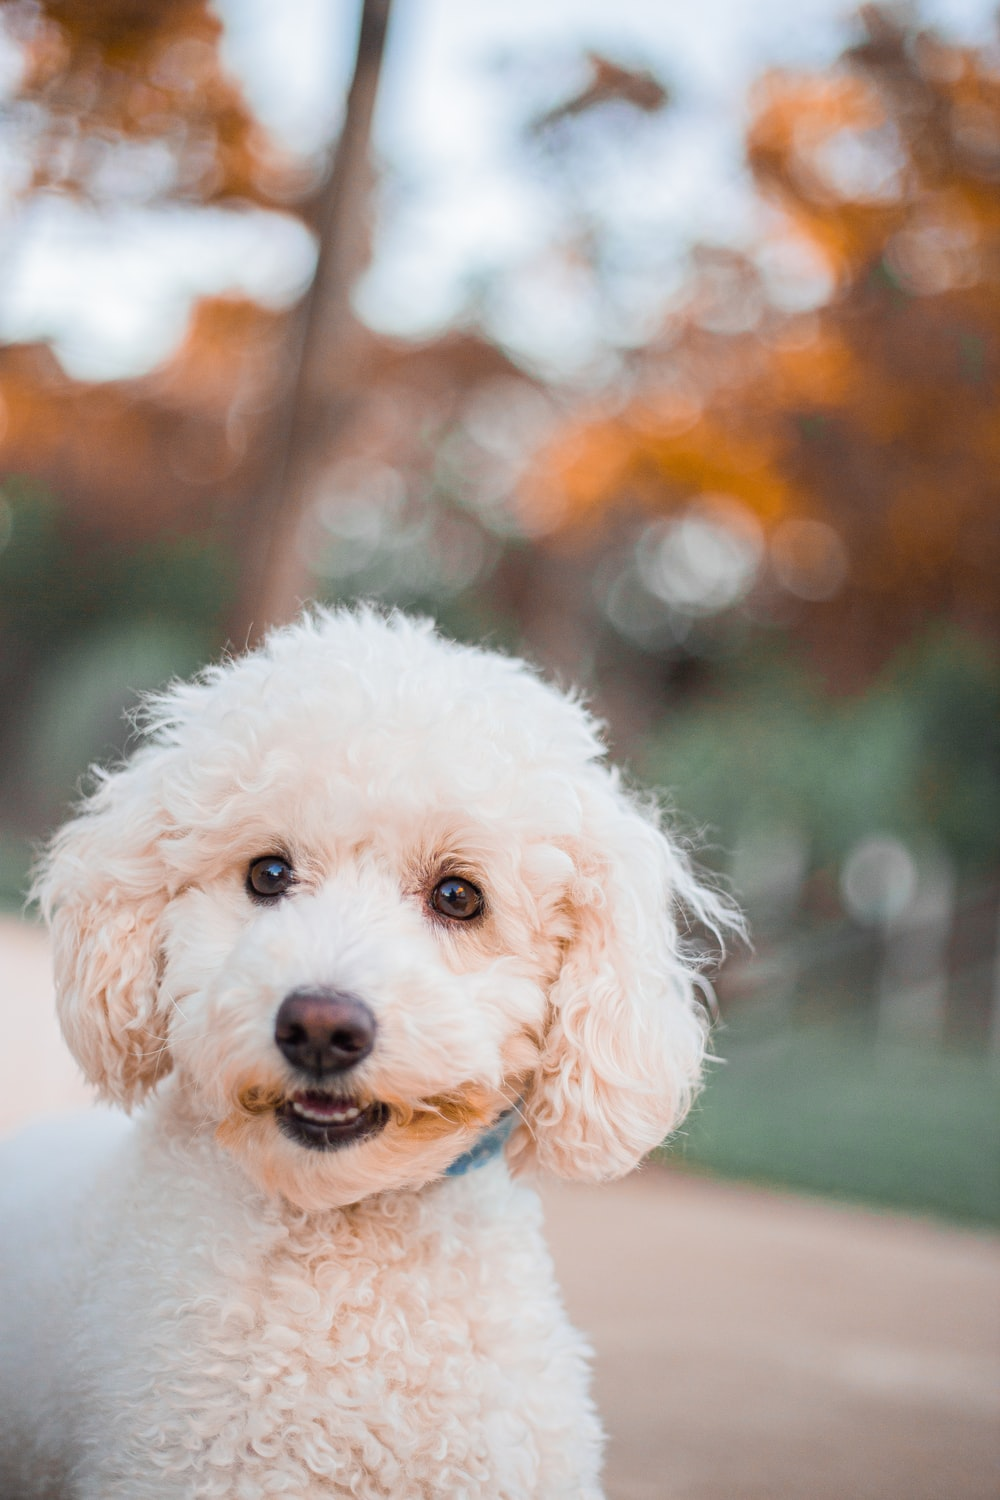 white poodle puppy on green grass field during daytime